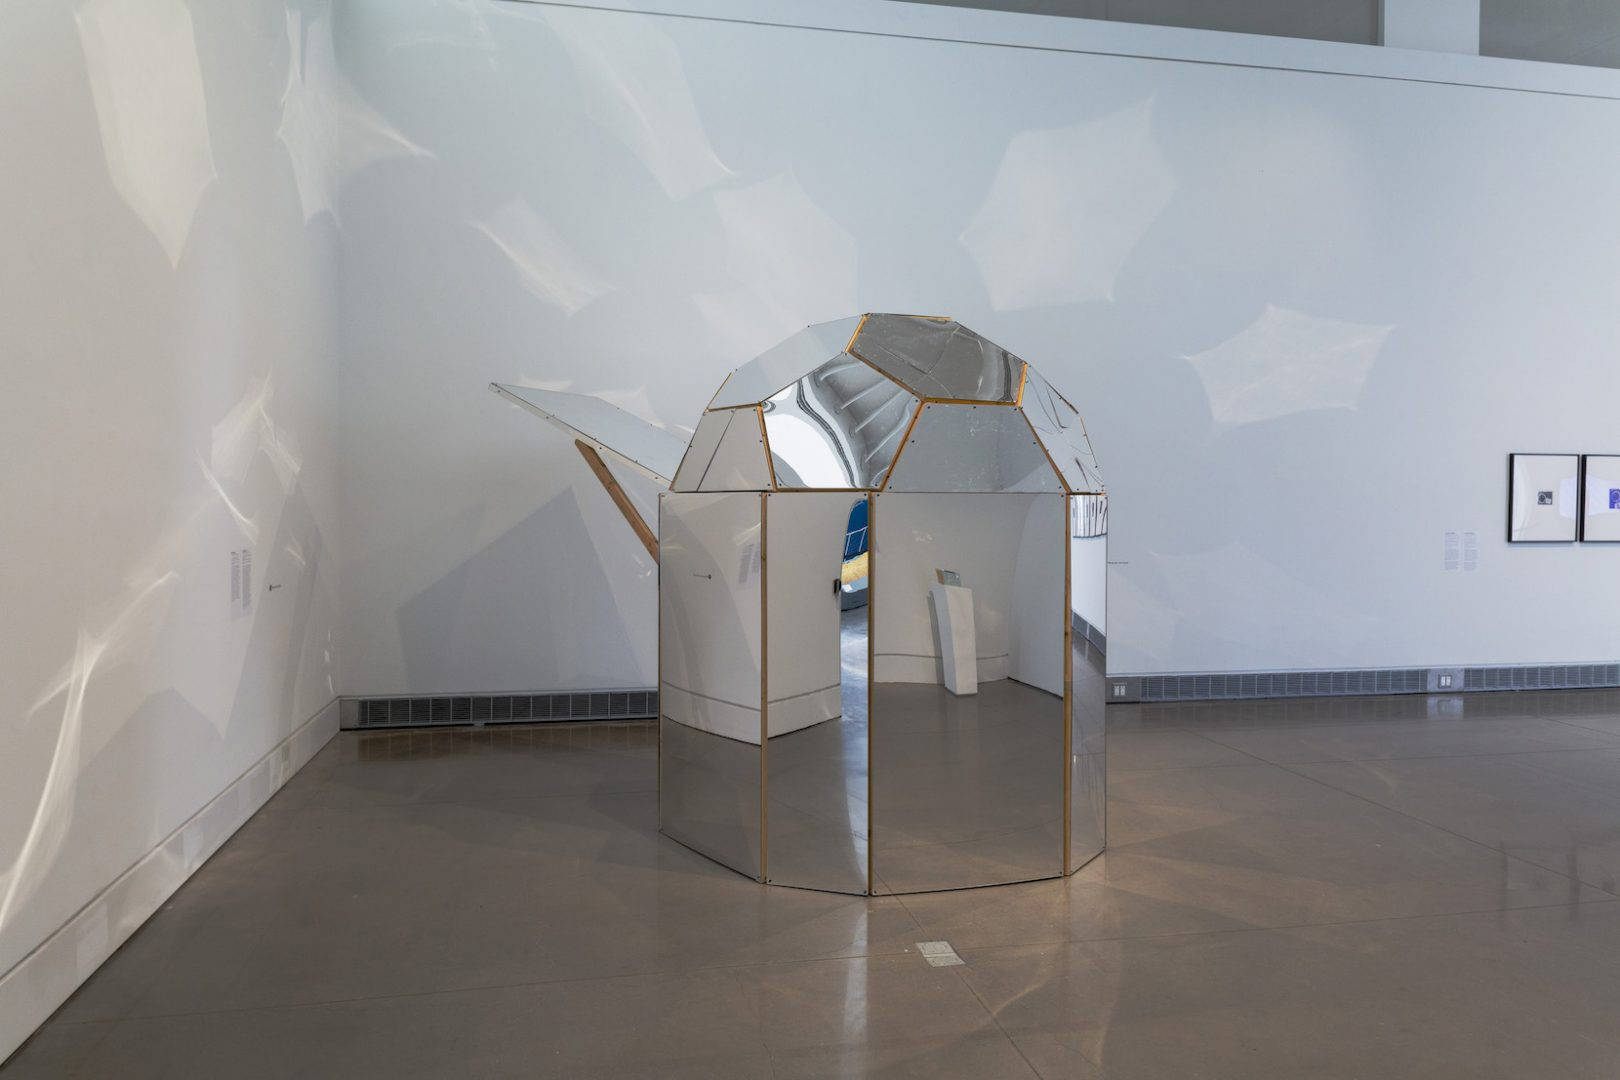 Beatriz Cortez, The Cosmos (Spaceship), 2015. Wood, acrylic mirror, sound installation. Installation view at the Queens Museum, New York. Courtesy of the artist and Commonwealth and Council. Photo: Hai Zhang.